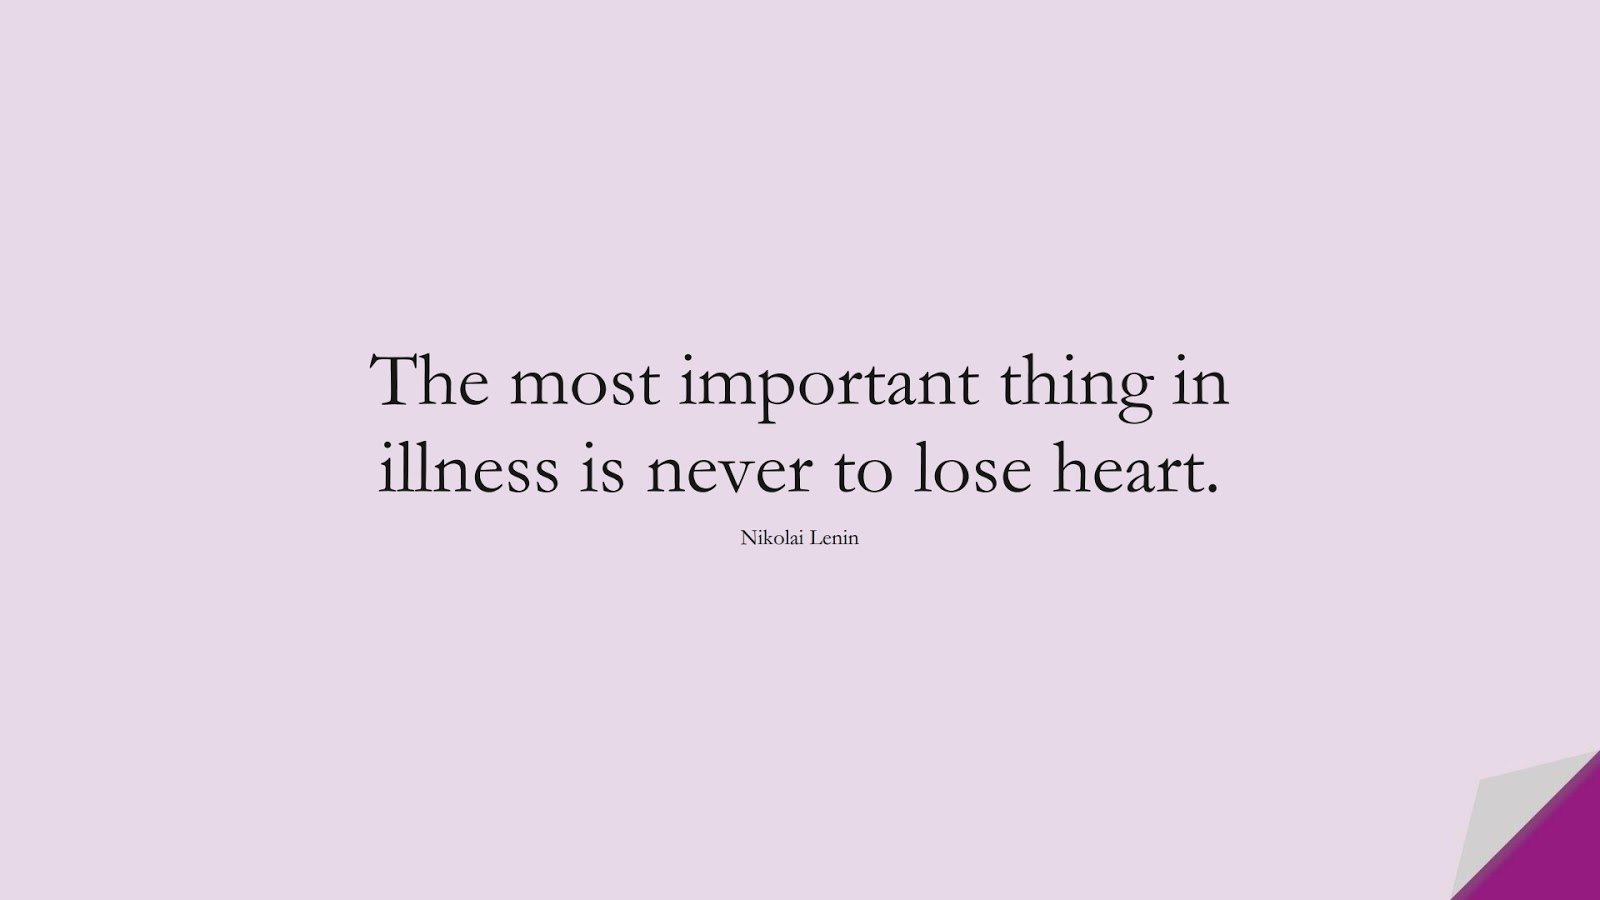 The most important thing in illness is never to lose heart. (Nikolai Lenin);  #HealthQuotes